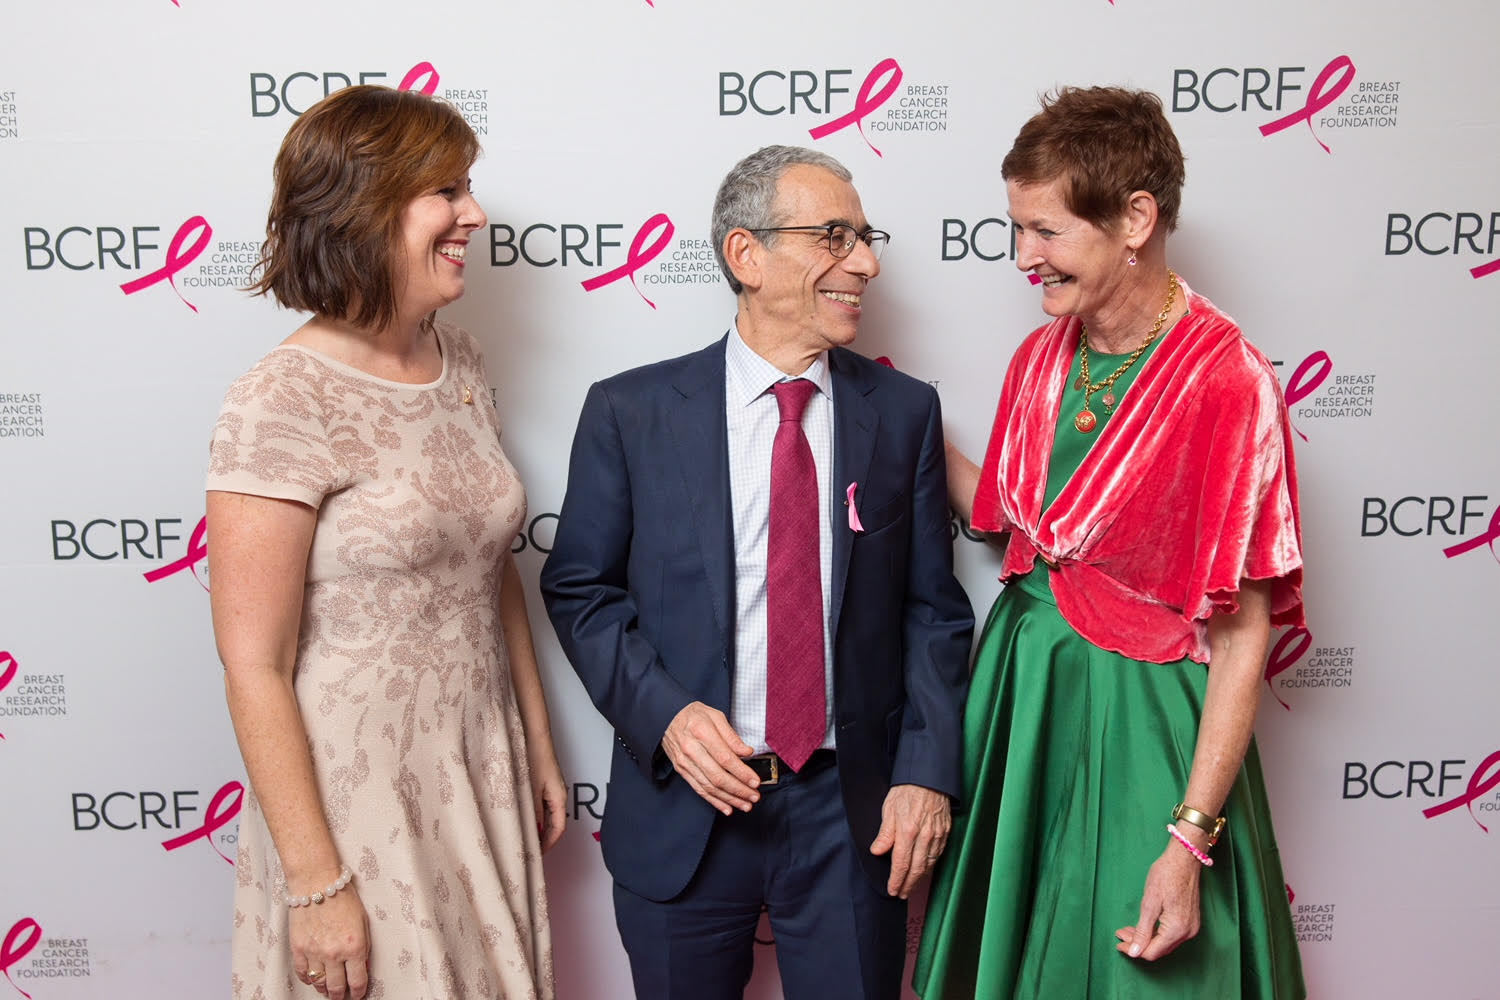 Kelley Tuthill, Dr. Eric Winer, (Carol's doctor, at Dana Farber) and Carol Chaoui.